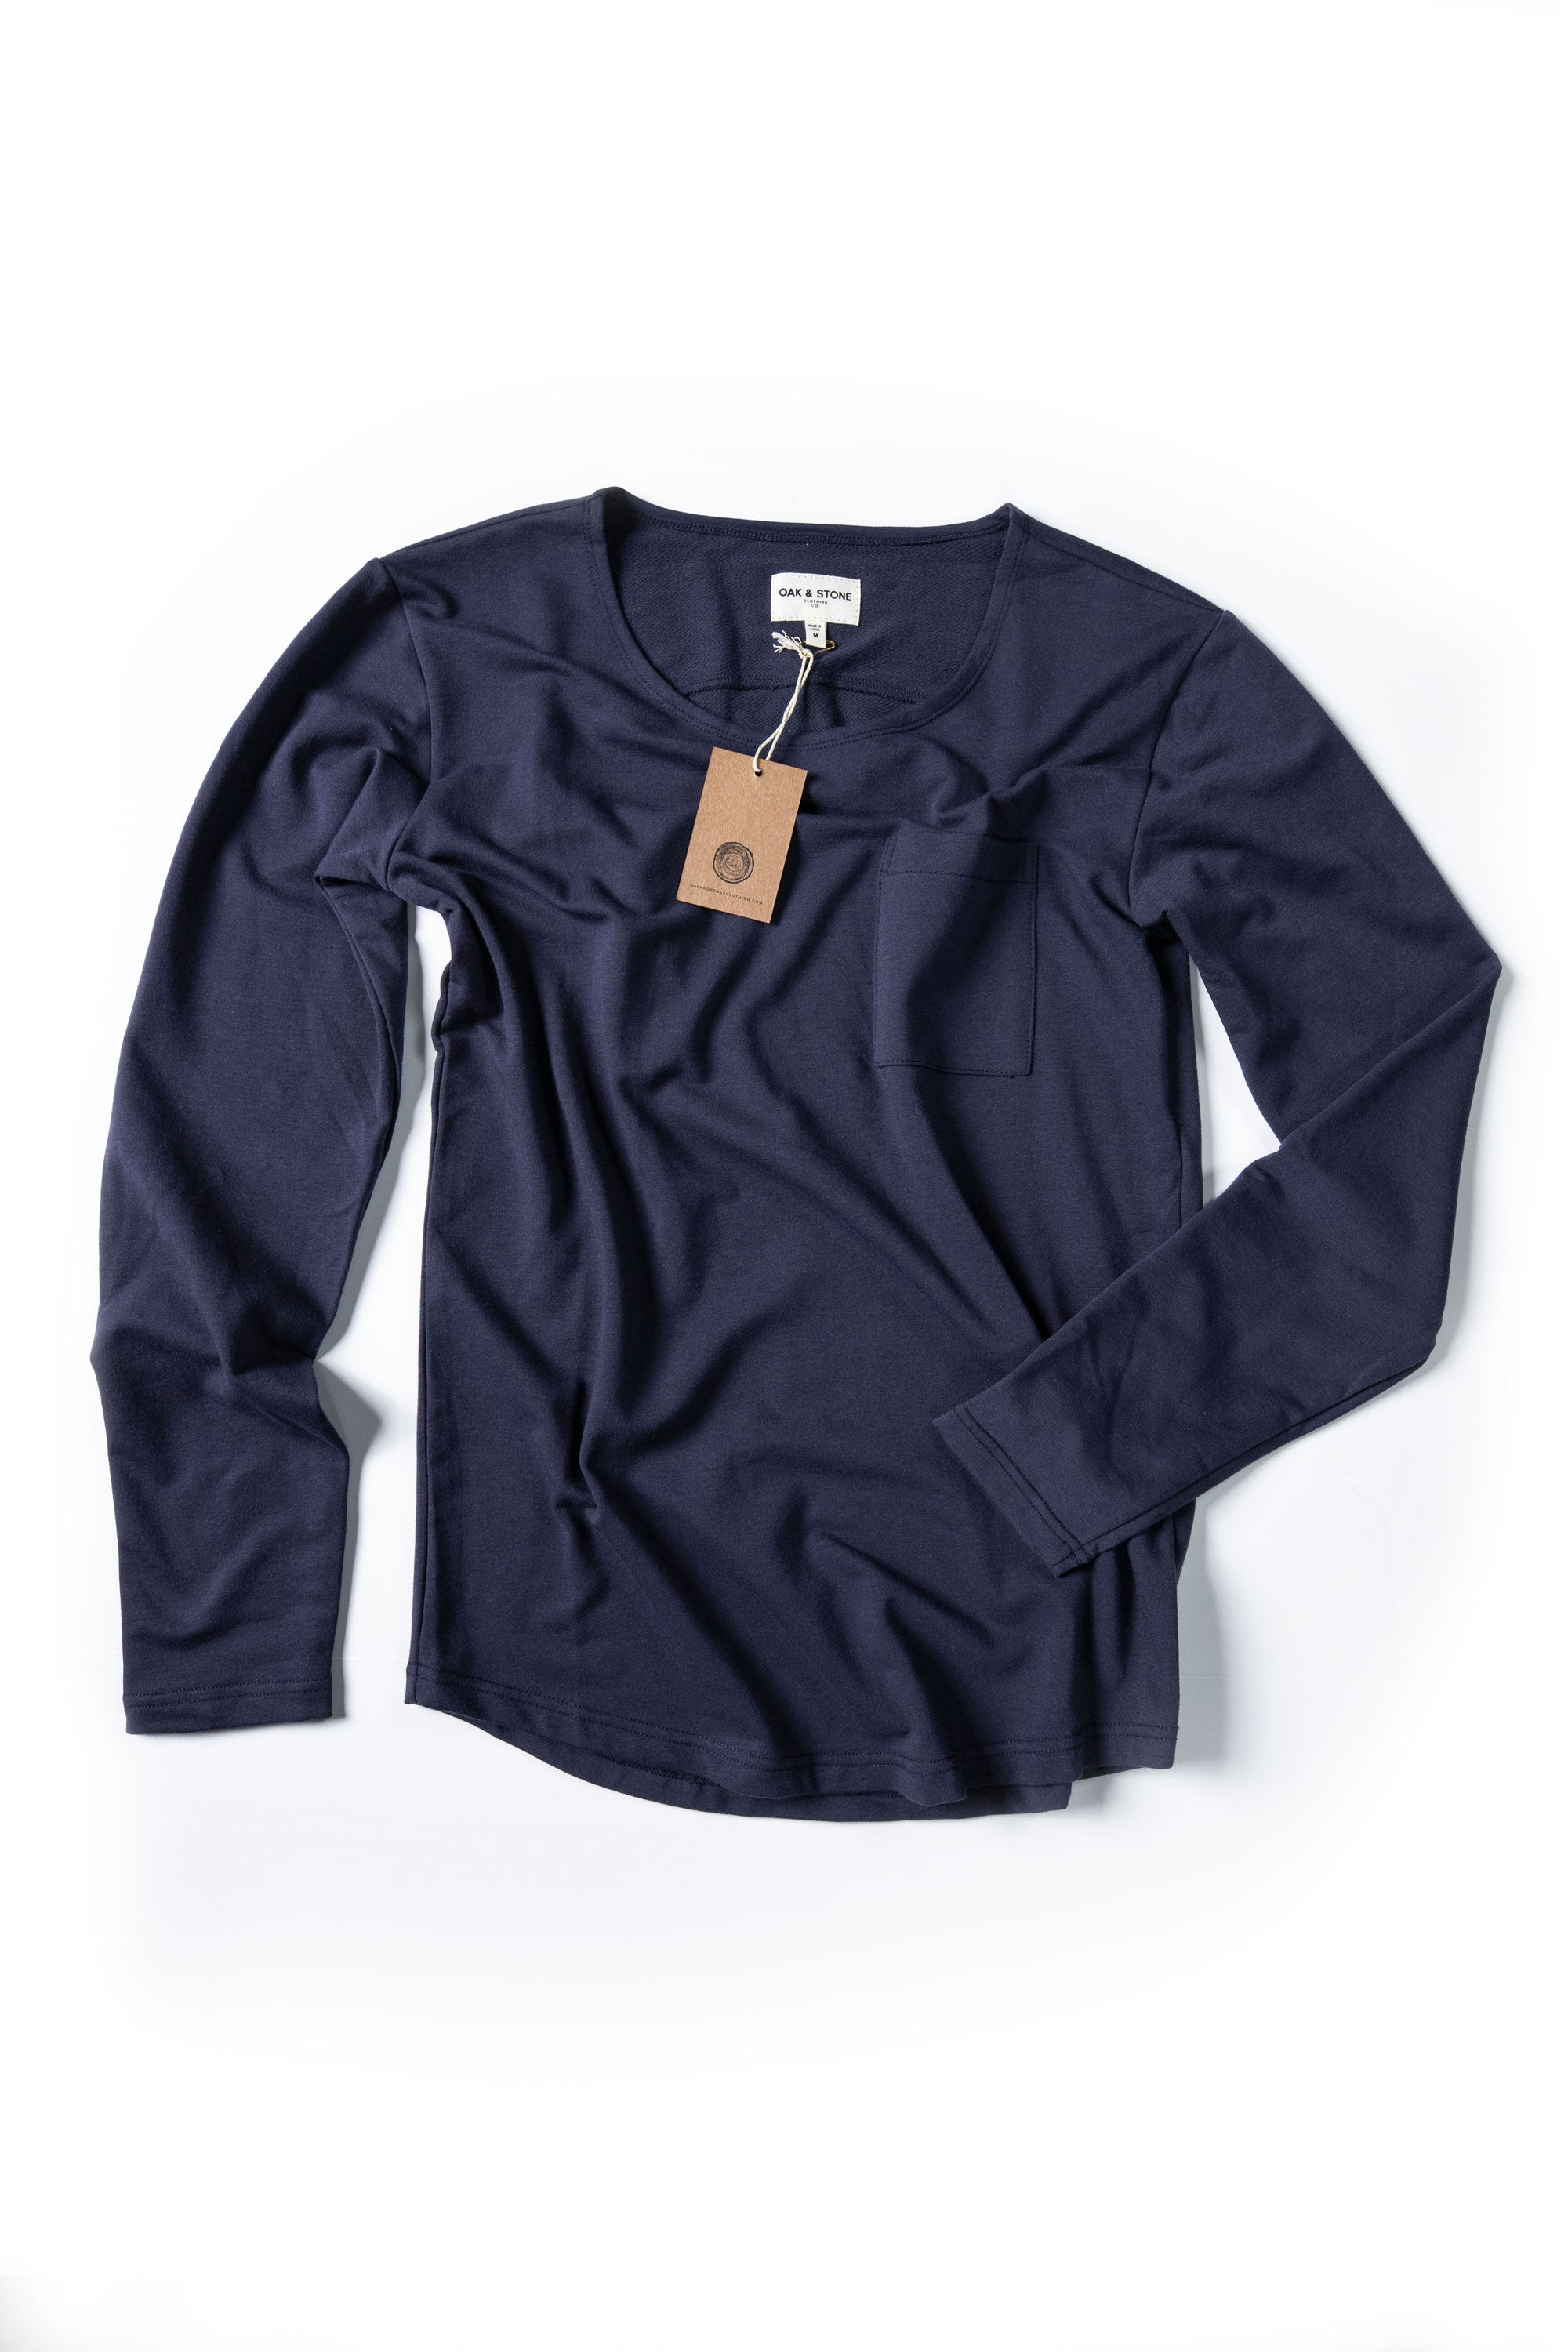 The Classic L/S Curve - Blue - Oak & Stone Clothing Co.